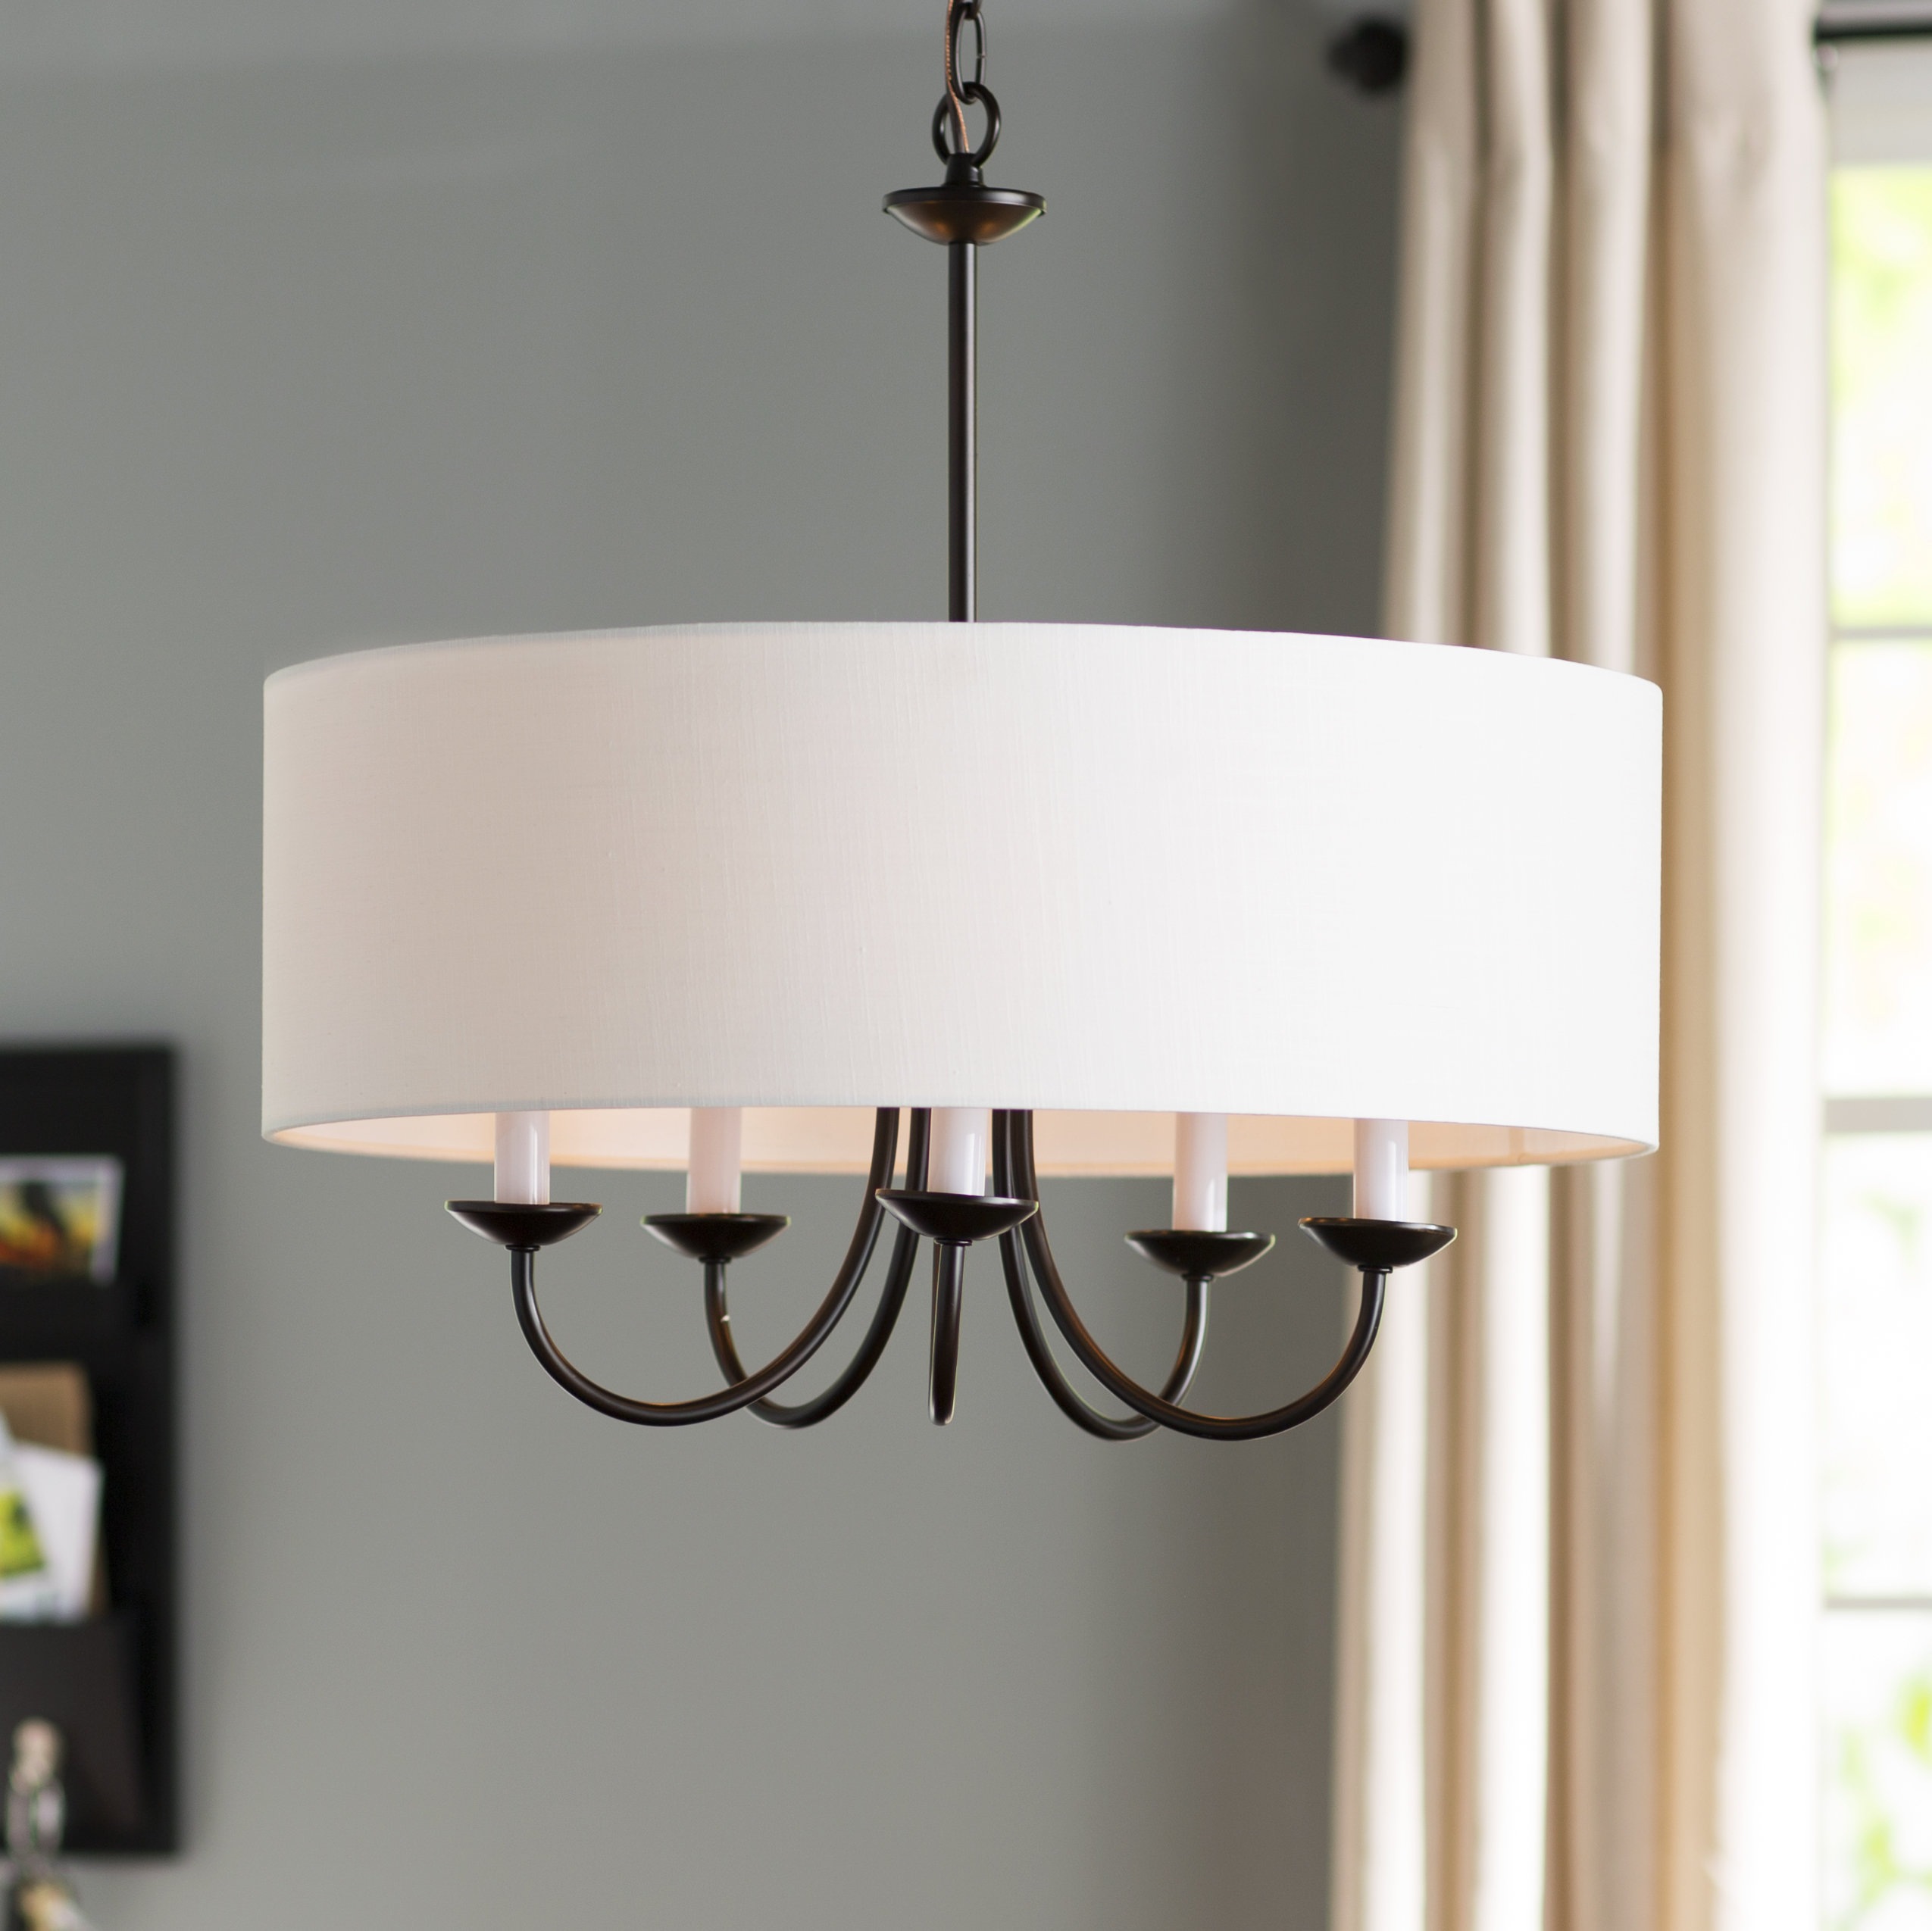 Dining Room Drum Chandelier | Wayfair With Regard To Breithaup 4 Light Drum Chandeliers (Photo 17 of 30)